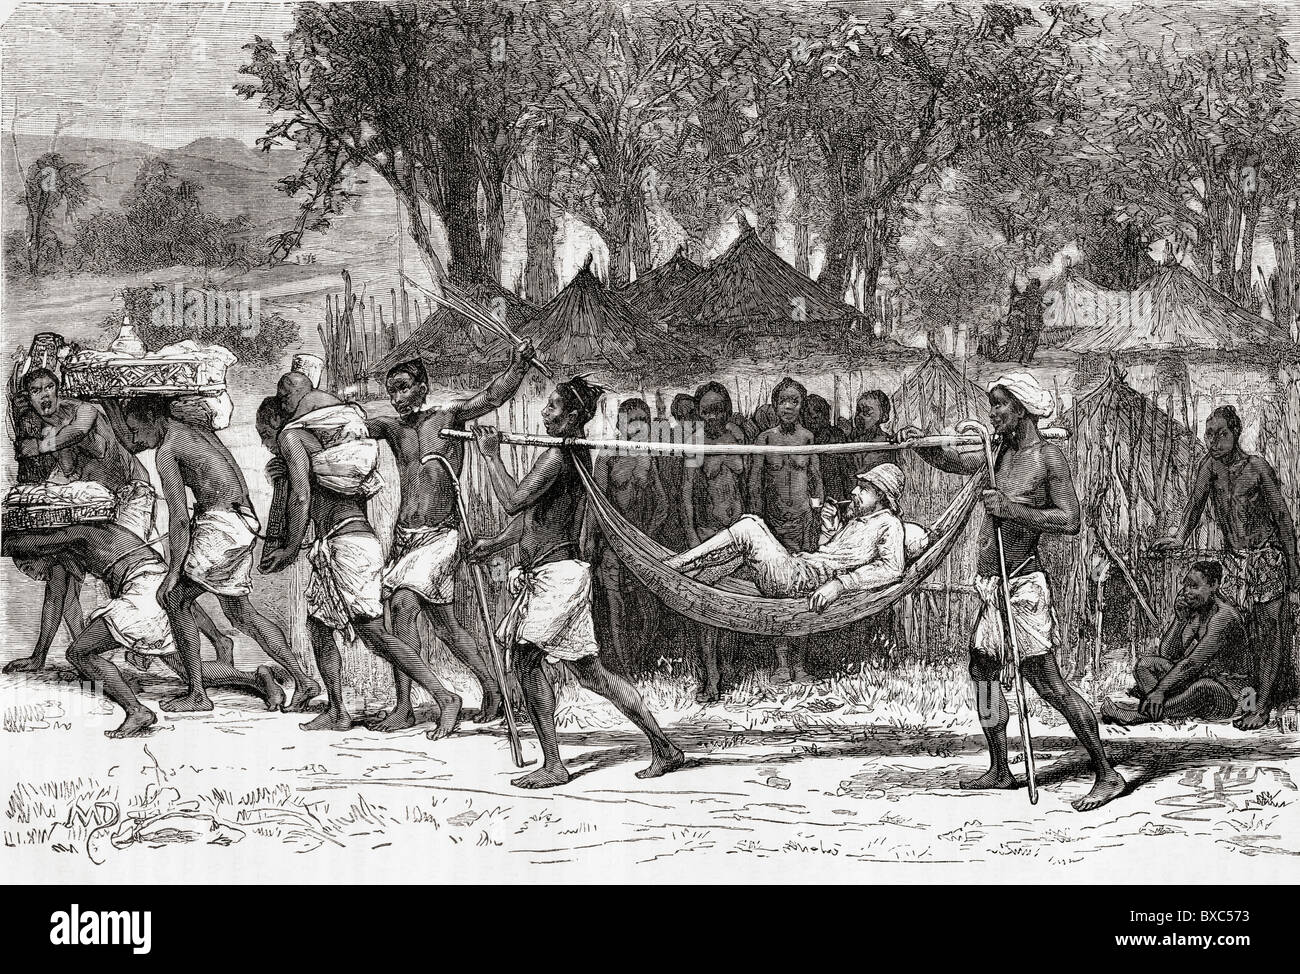 Verney Lovett Cameron arriving at the village of Oulonnda, Africa during his travels there in 1872 to 1876. - Stock Image